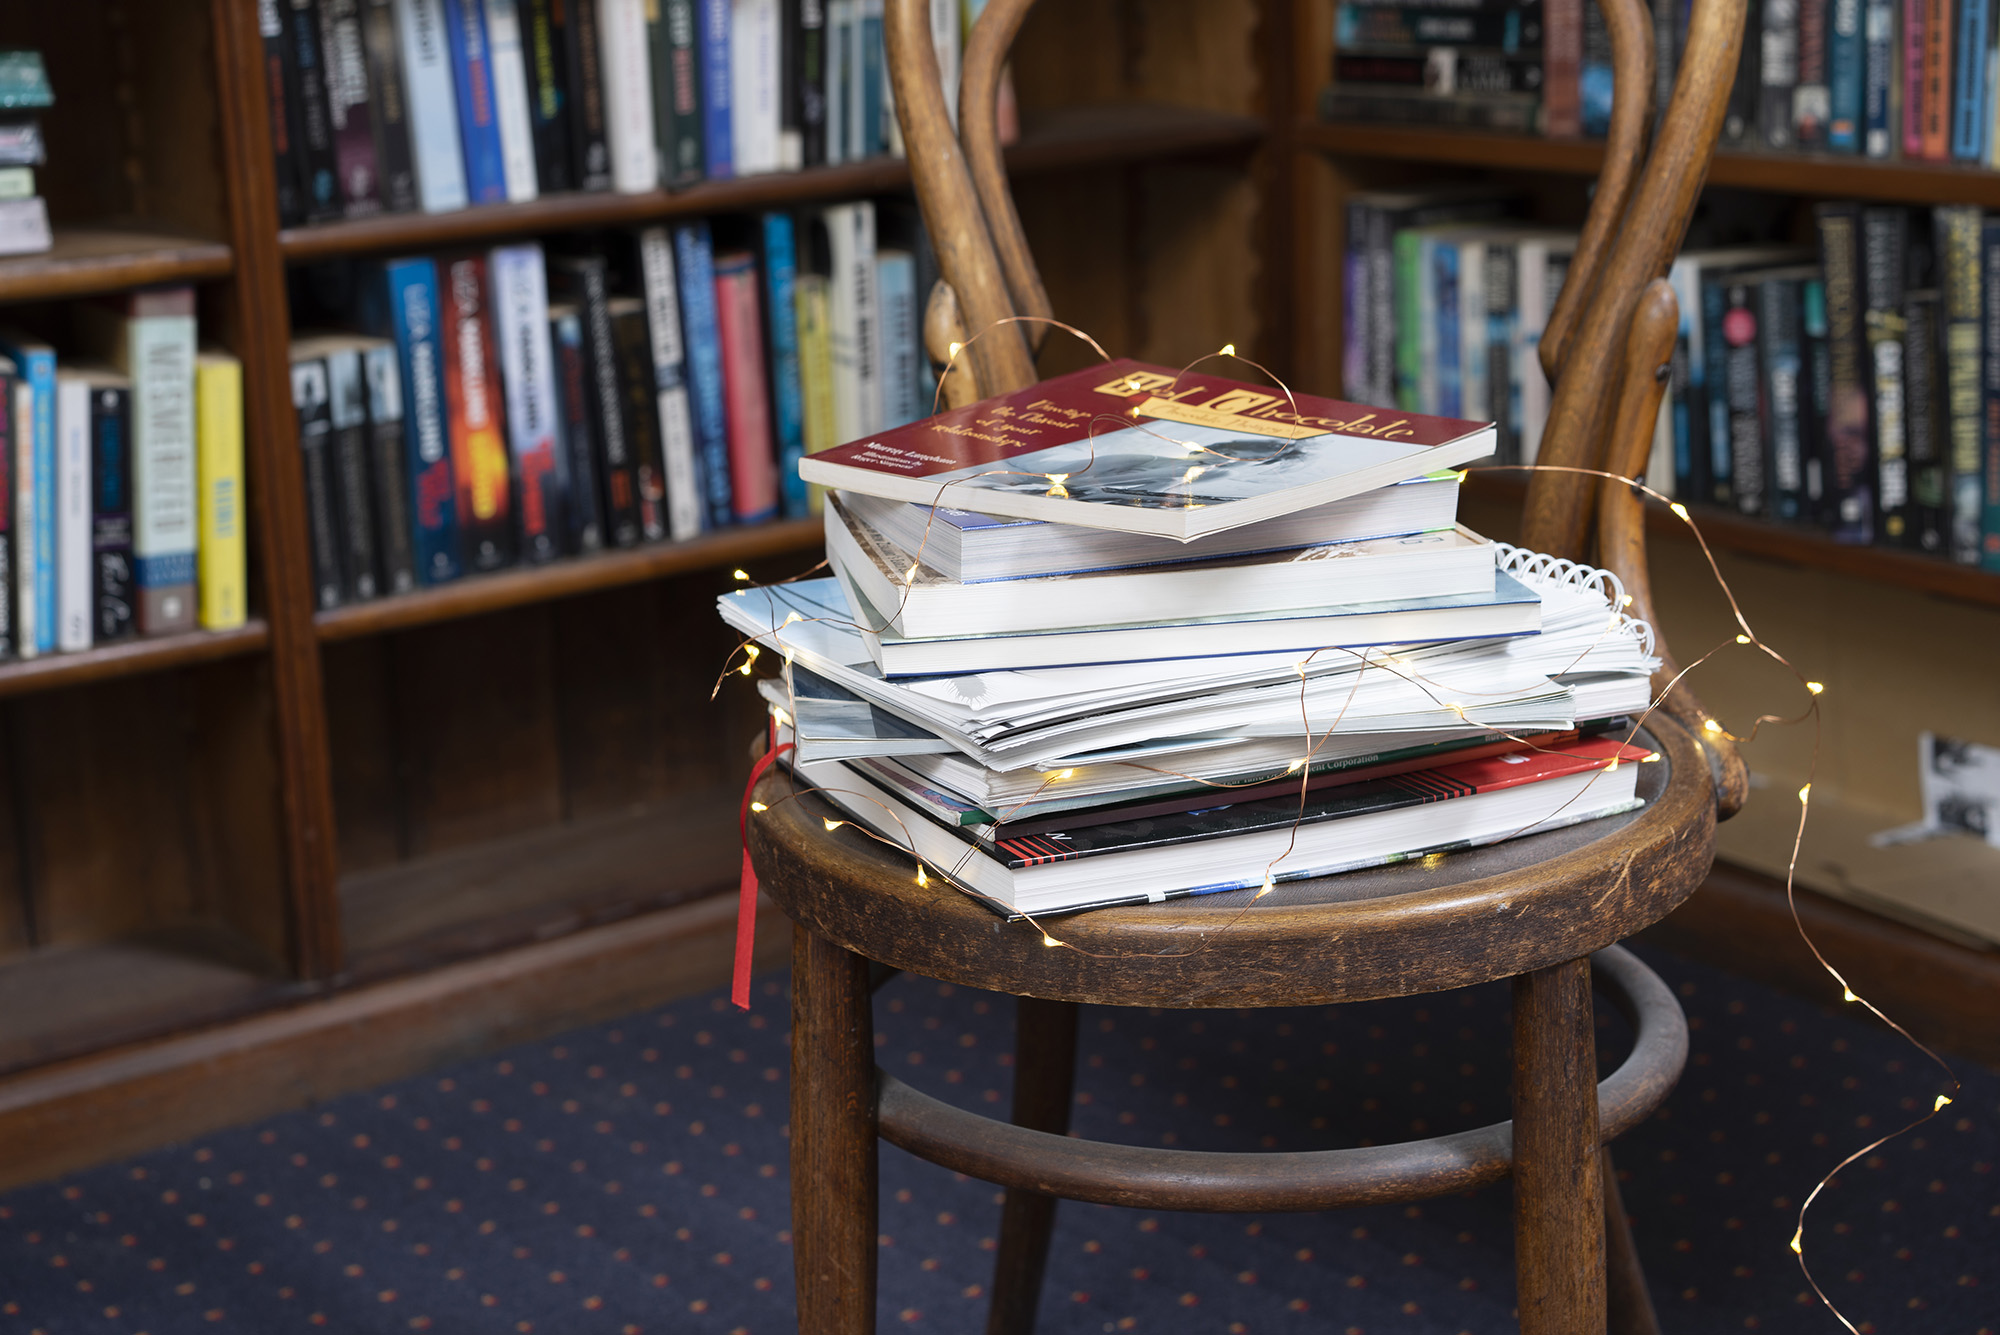 Pile of books on a chair